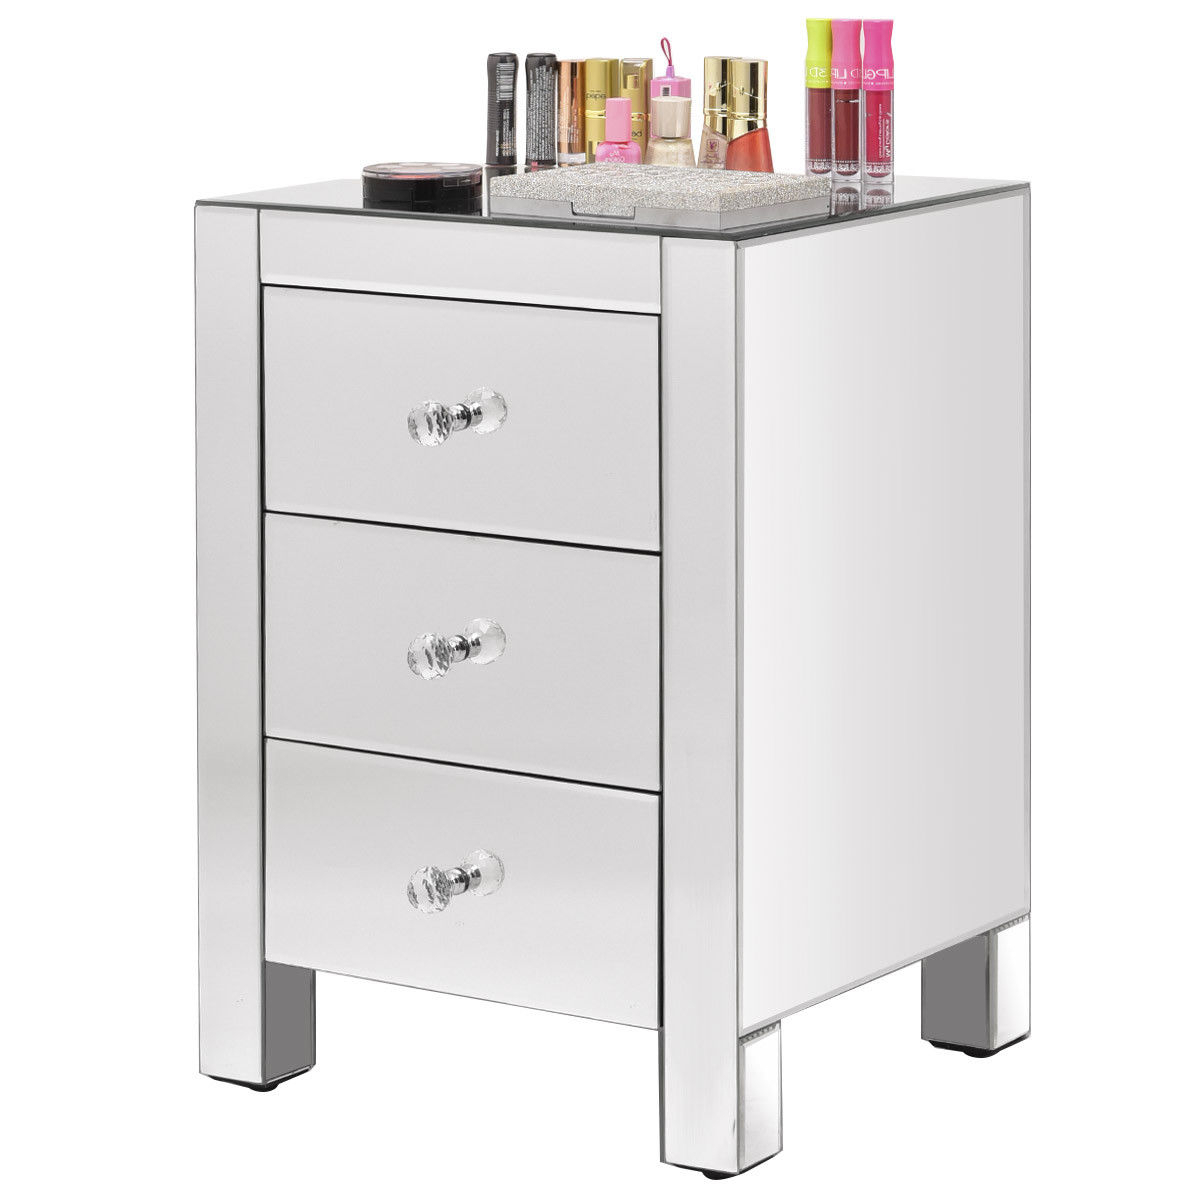 Costway: Costway Mirrored Nightstand 3 Drawer Modern Mirror End Intended For Most Up To Date Charcoal Finish 4 Door Jumbo Sideboards (Gallery 12 of 20)